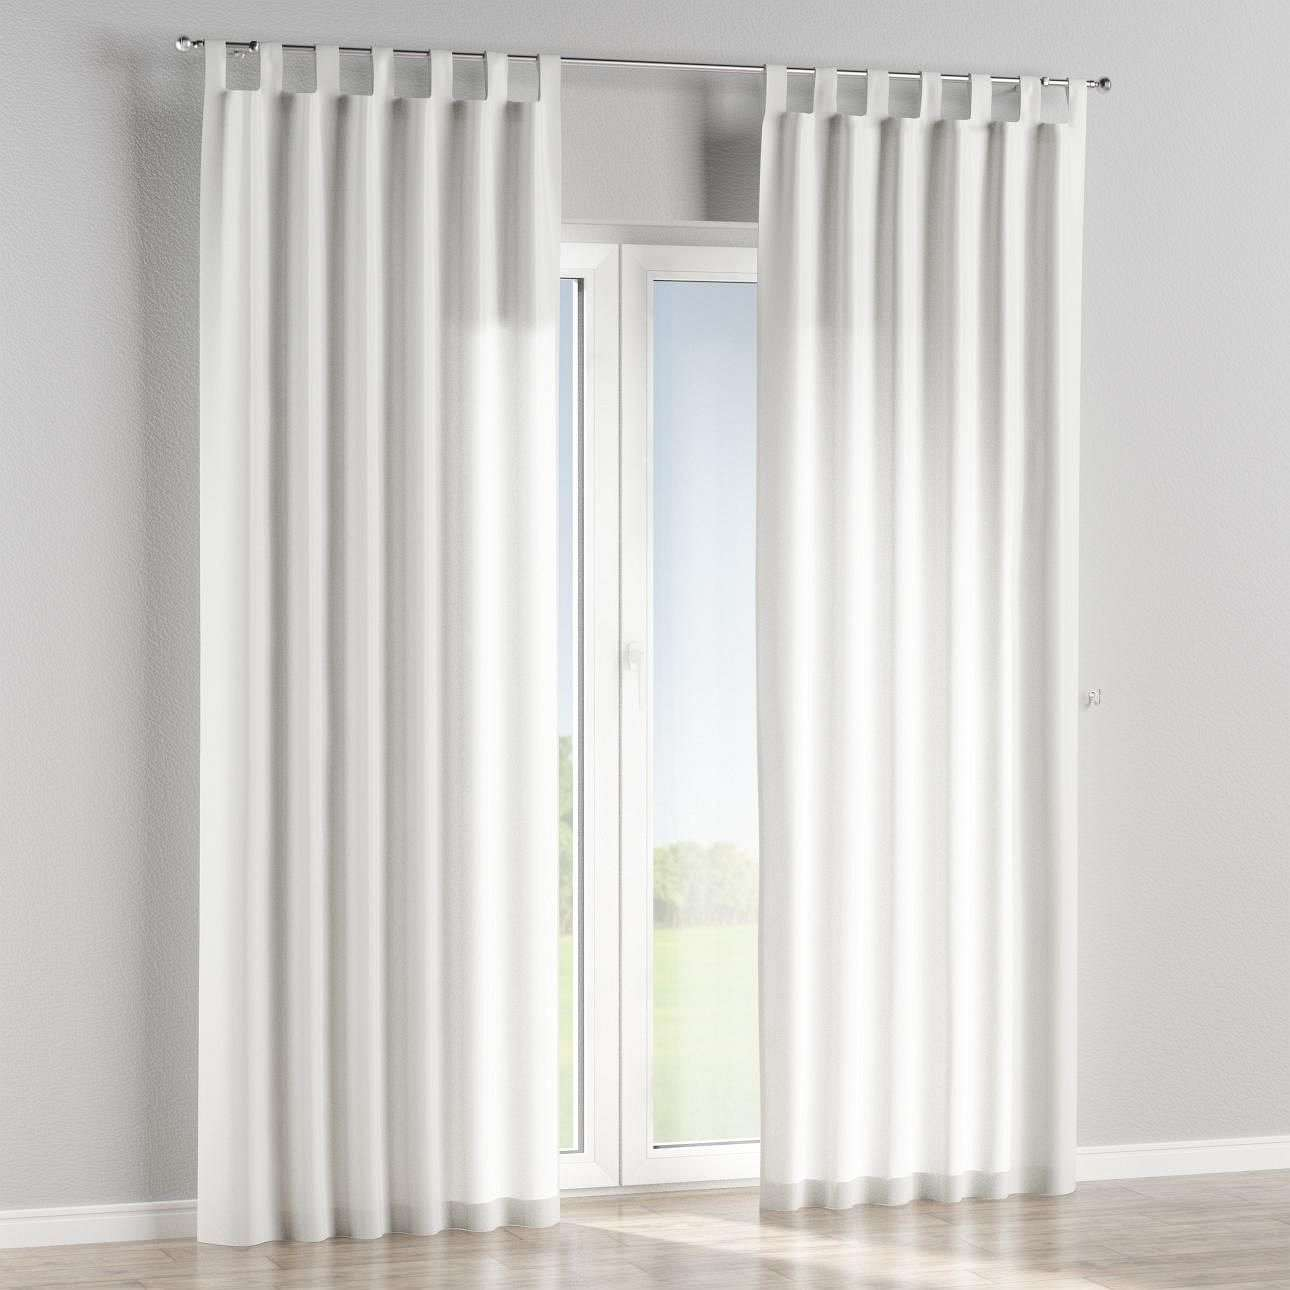 Tab top curtains in collection Rustica, fabric: 138-16